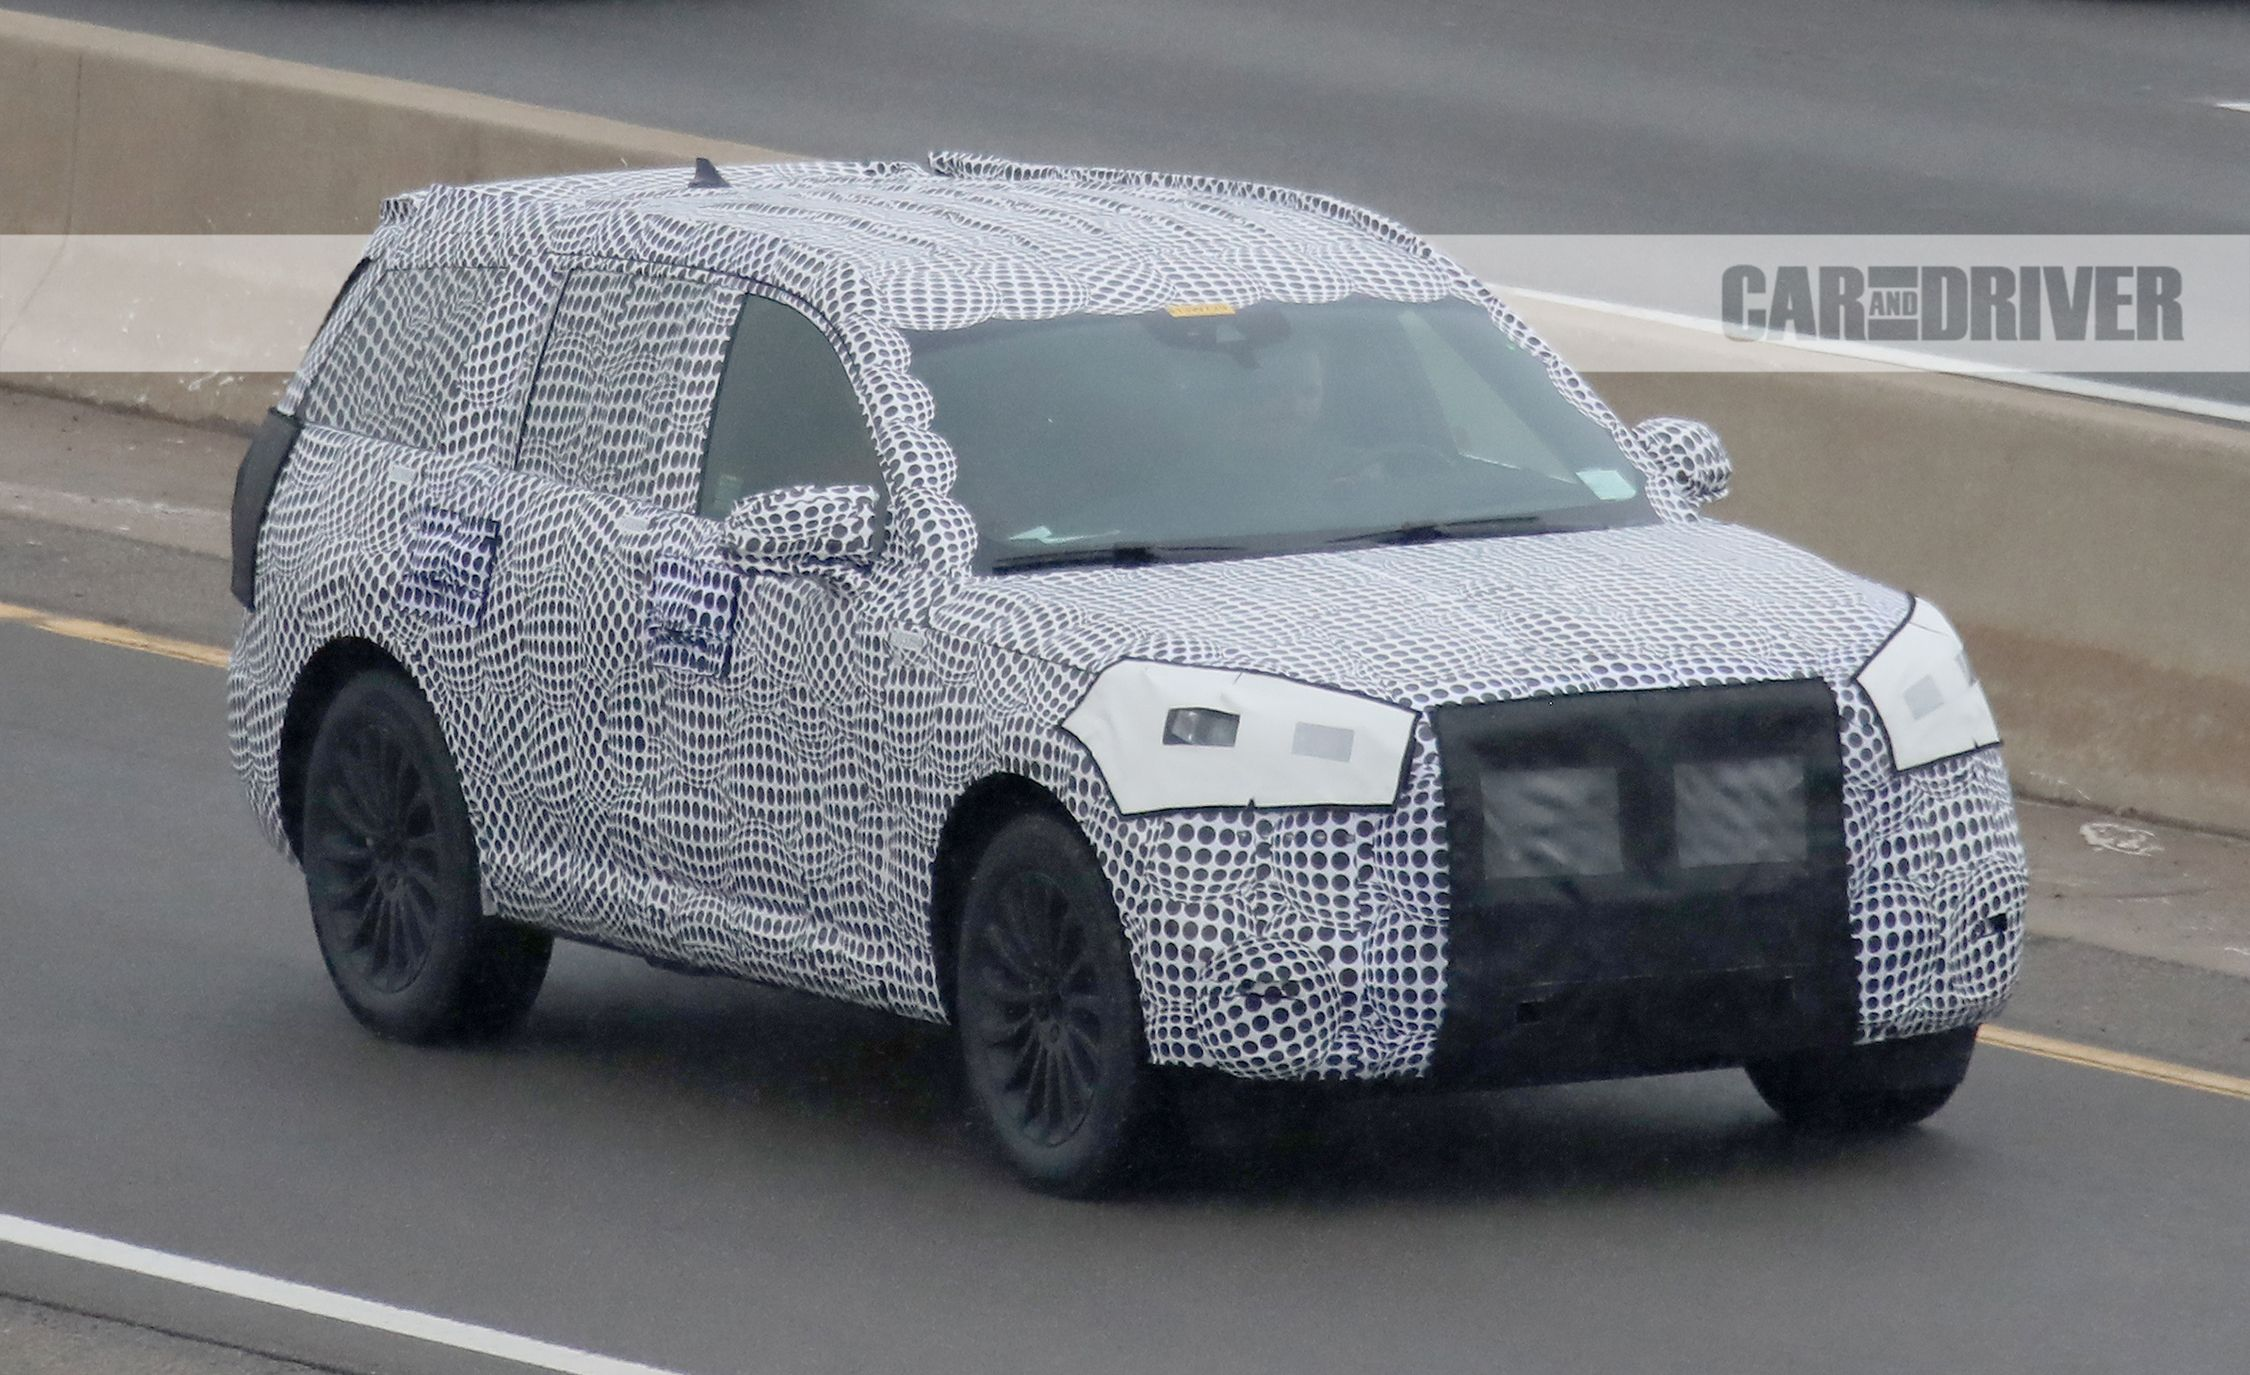 2020 Lincoln Aviator Spied New Luxury Suv Steps Out In Camo News Car And Driver